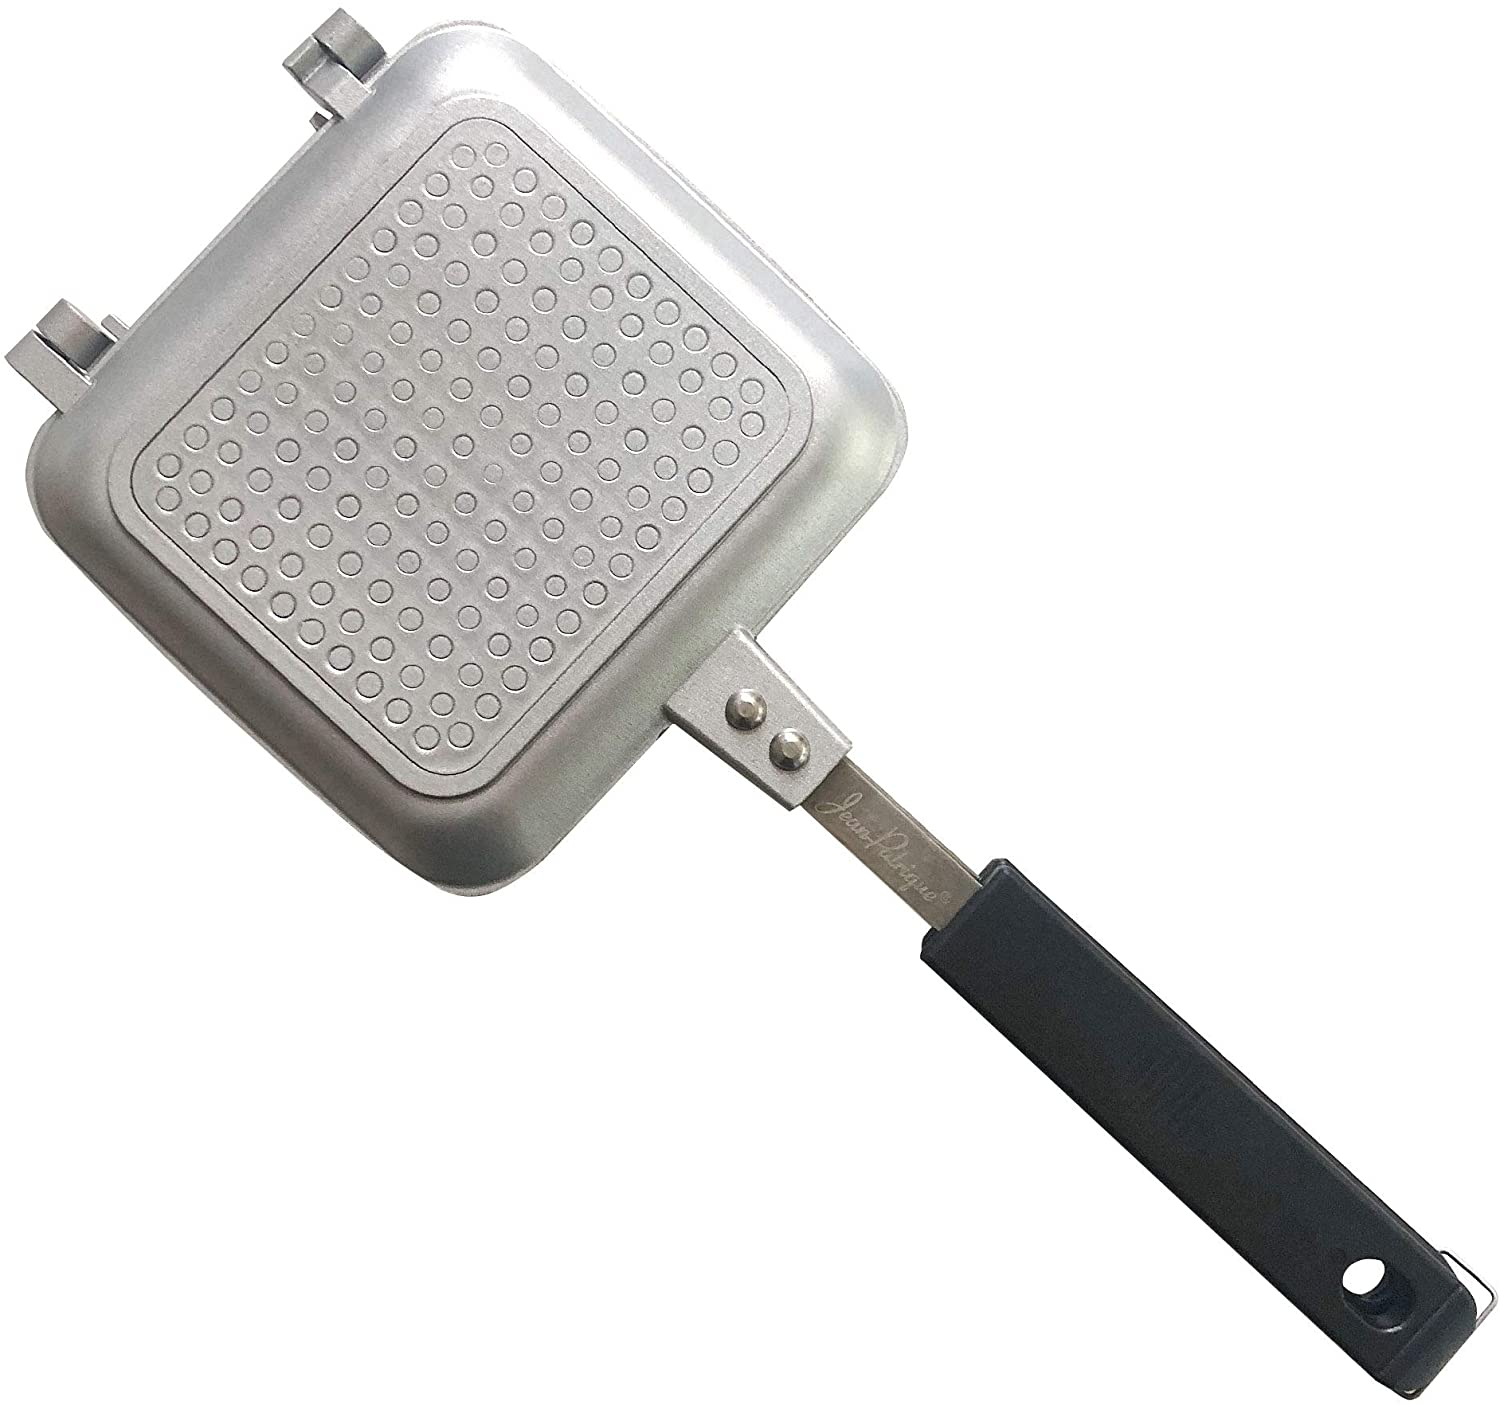 Jean-Patrique Toasted Sandwich Maker Non-Stick Technology Ideal for Outdoors – Silver